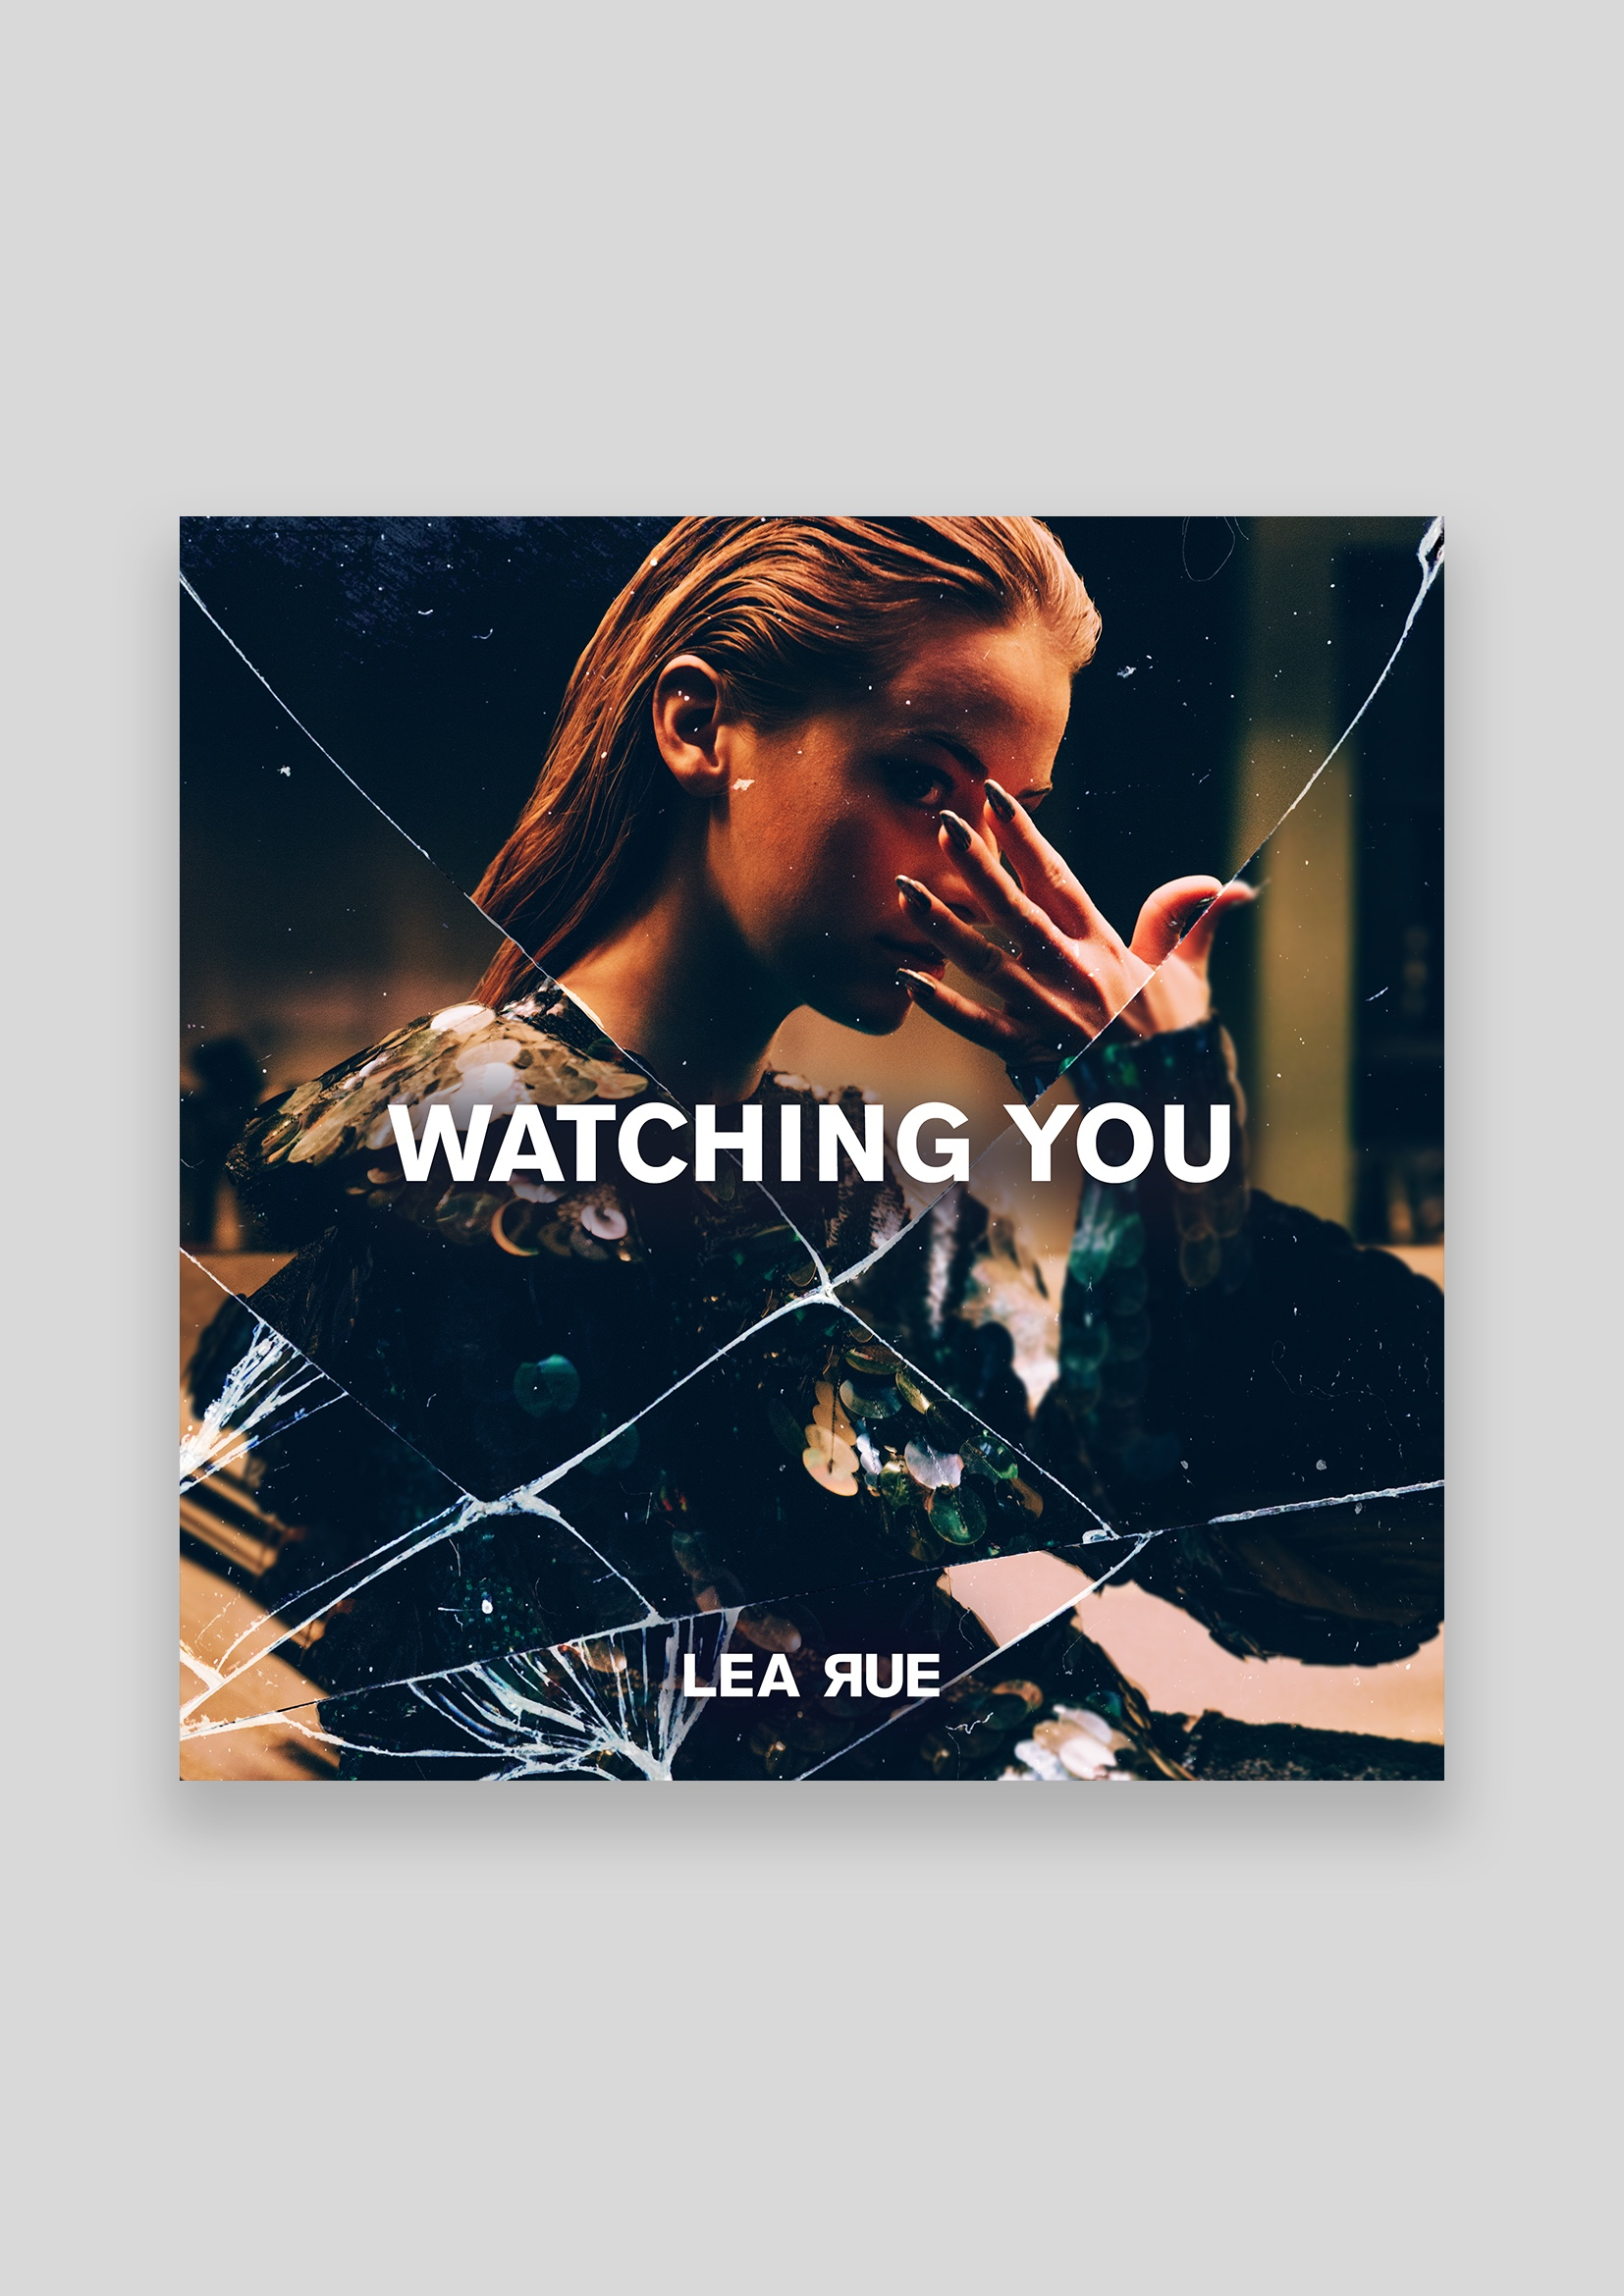 Concept and design for the cover Artwork of Lea Rue's single 'Watching you'